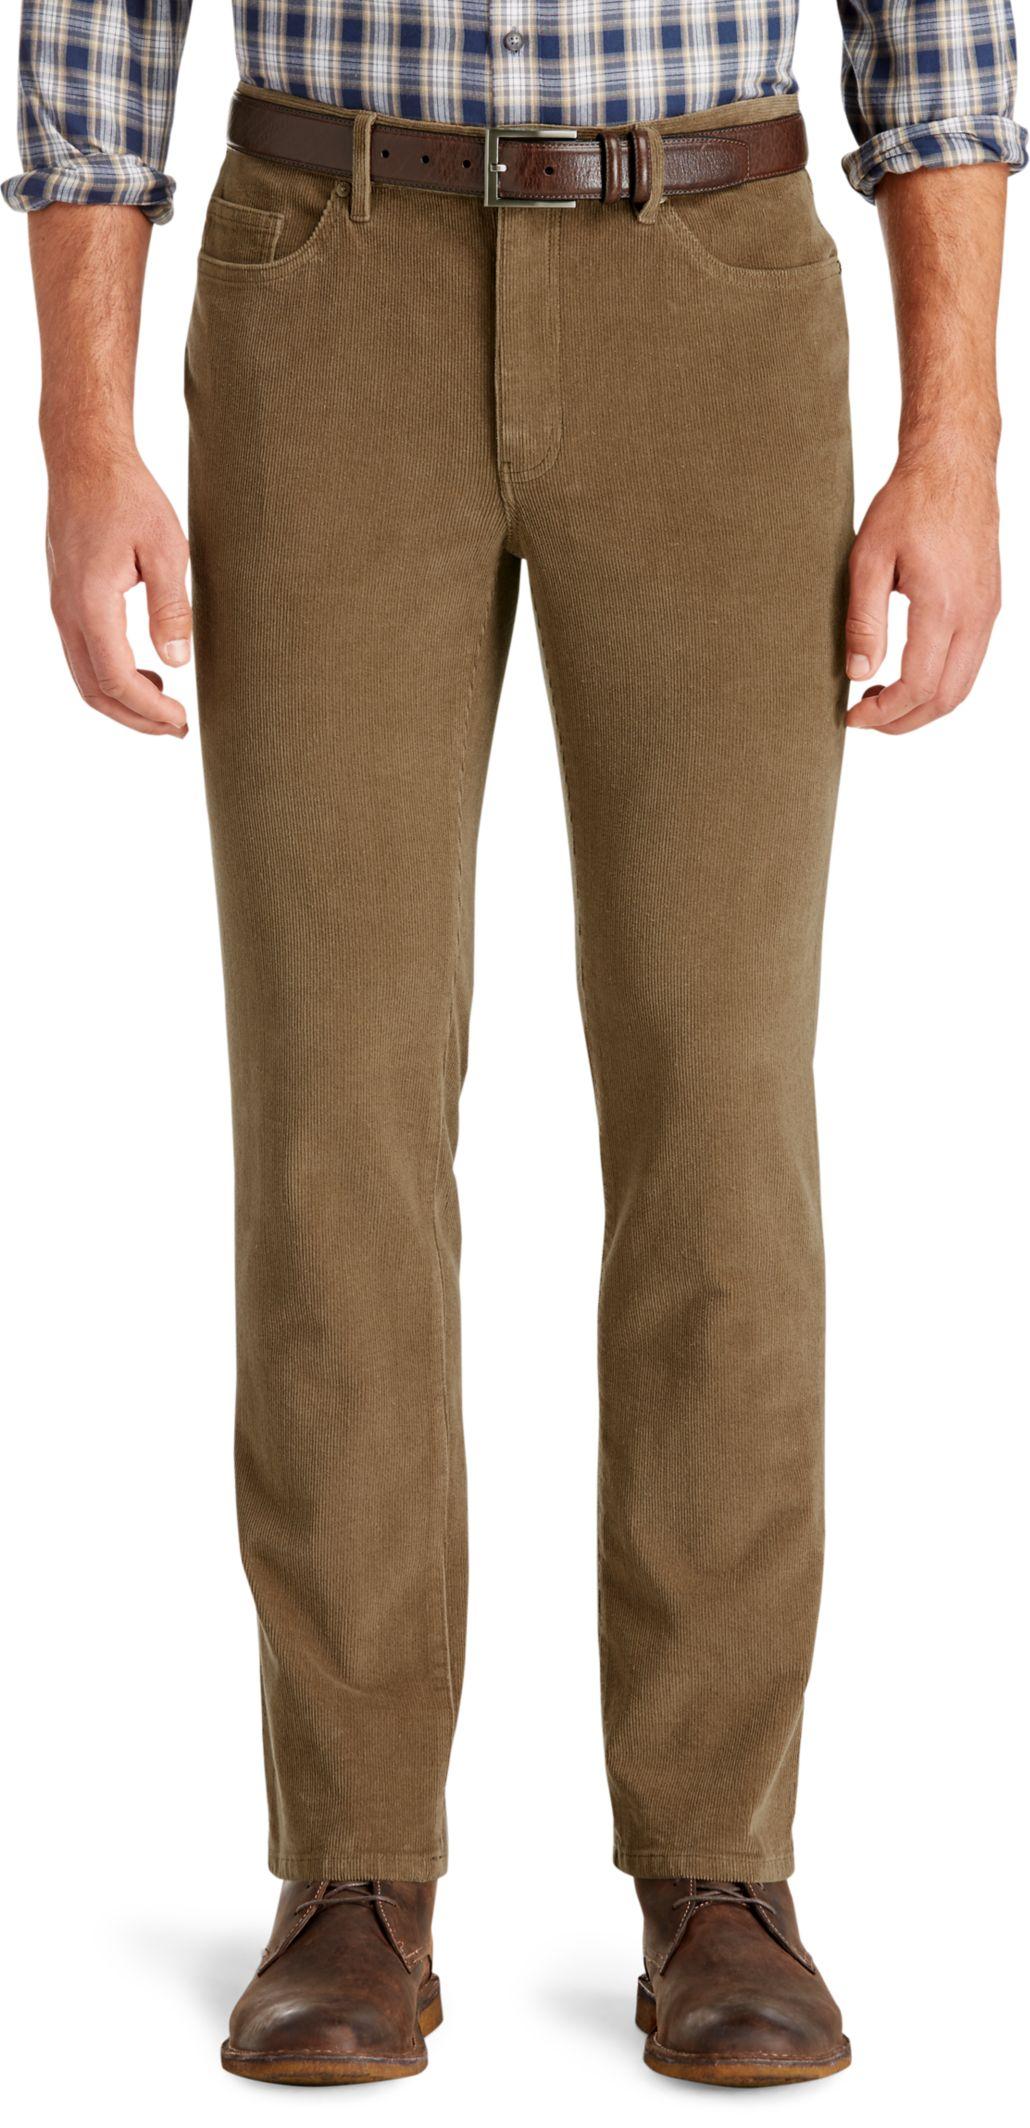 Corduroy Pants | Men's Pants | JoS. A. Bank Clothiers